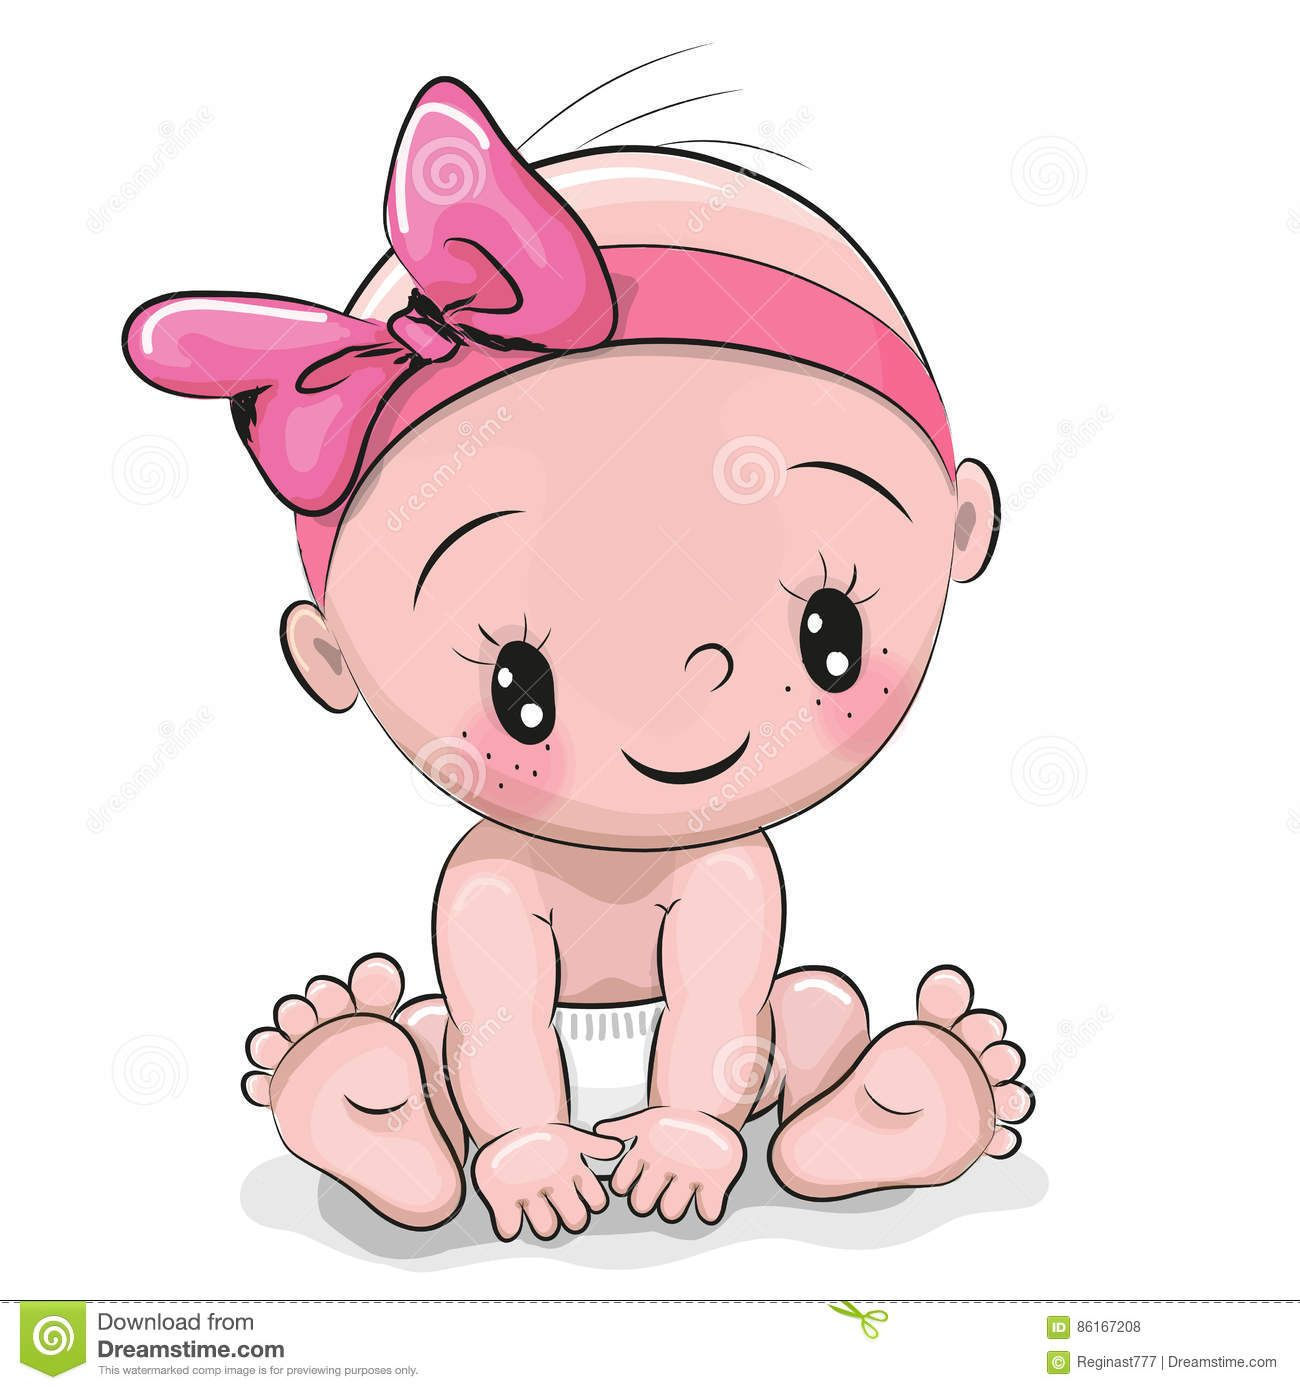 Cute Cartoon Baby From